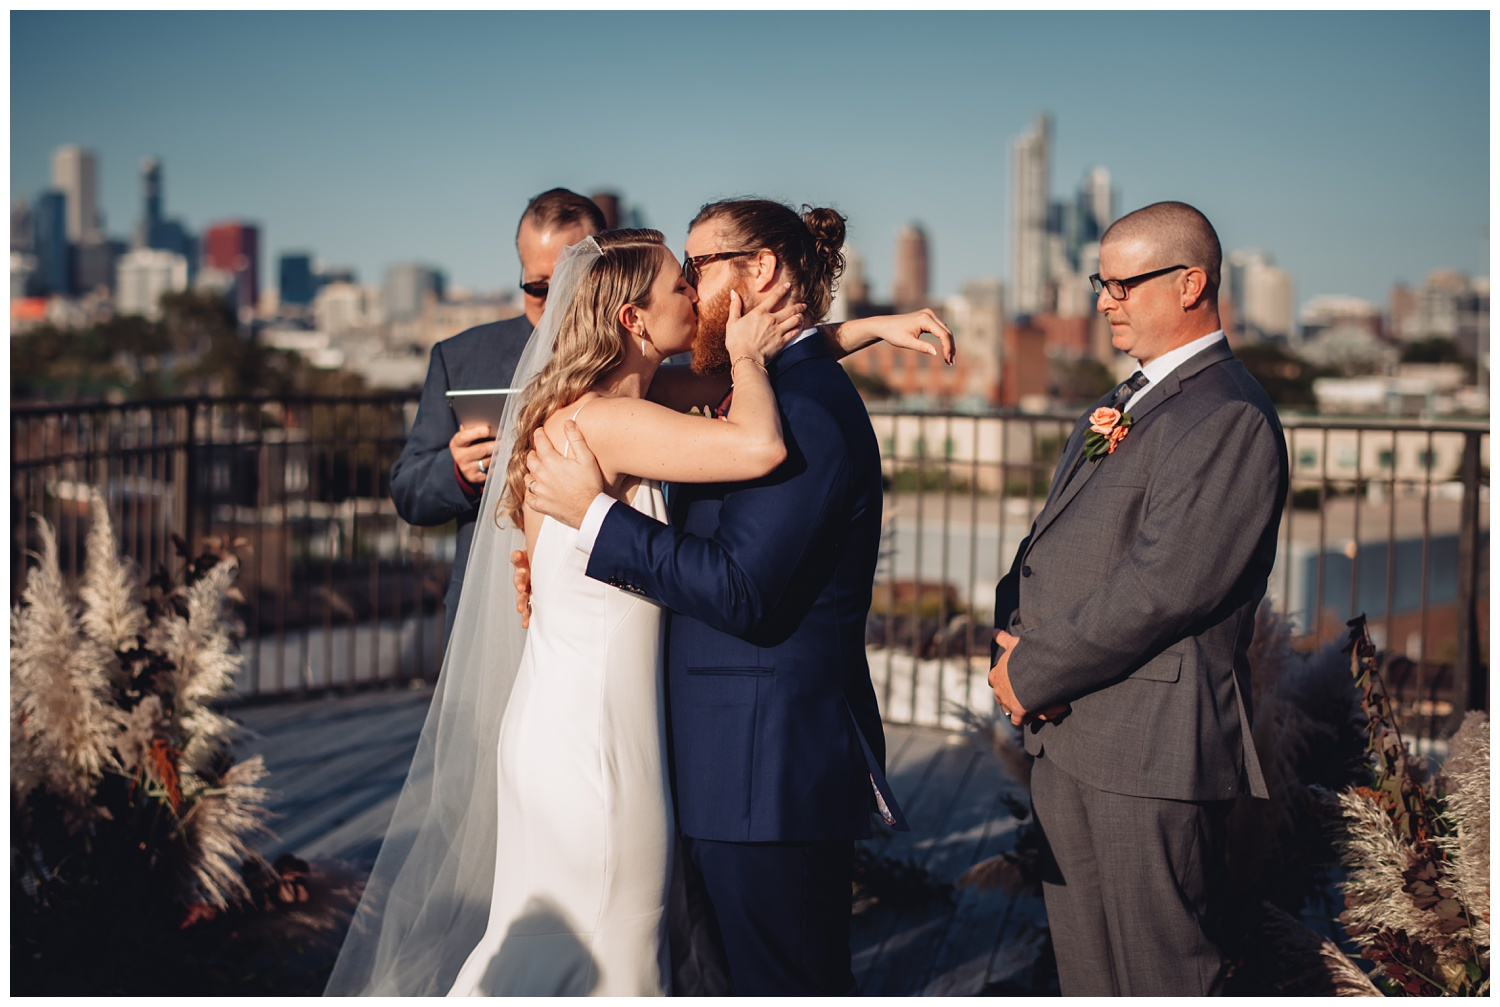 Lacuna Lofts Chicago Wedding Photography - The Adamkovi, rooftop ceremony, first kiss